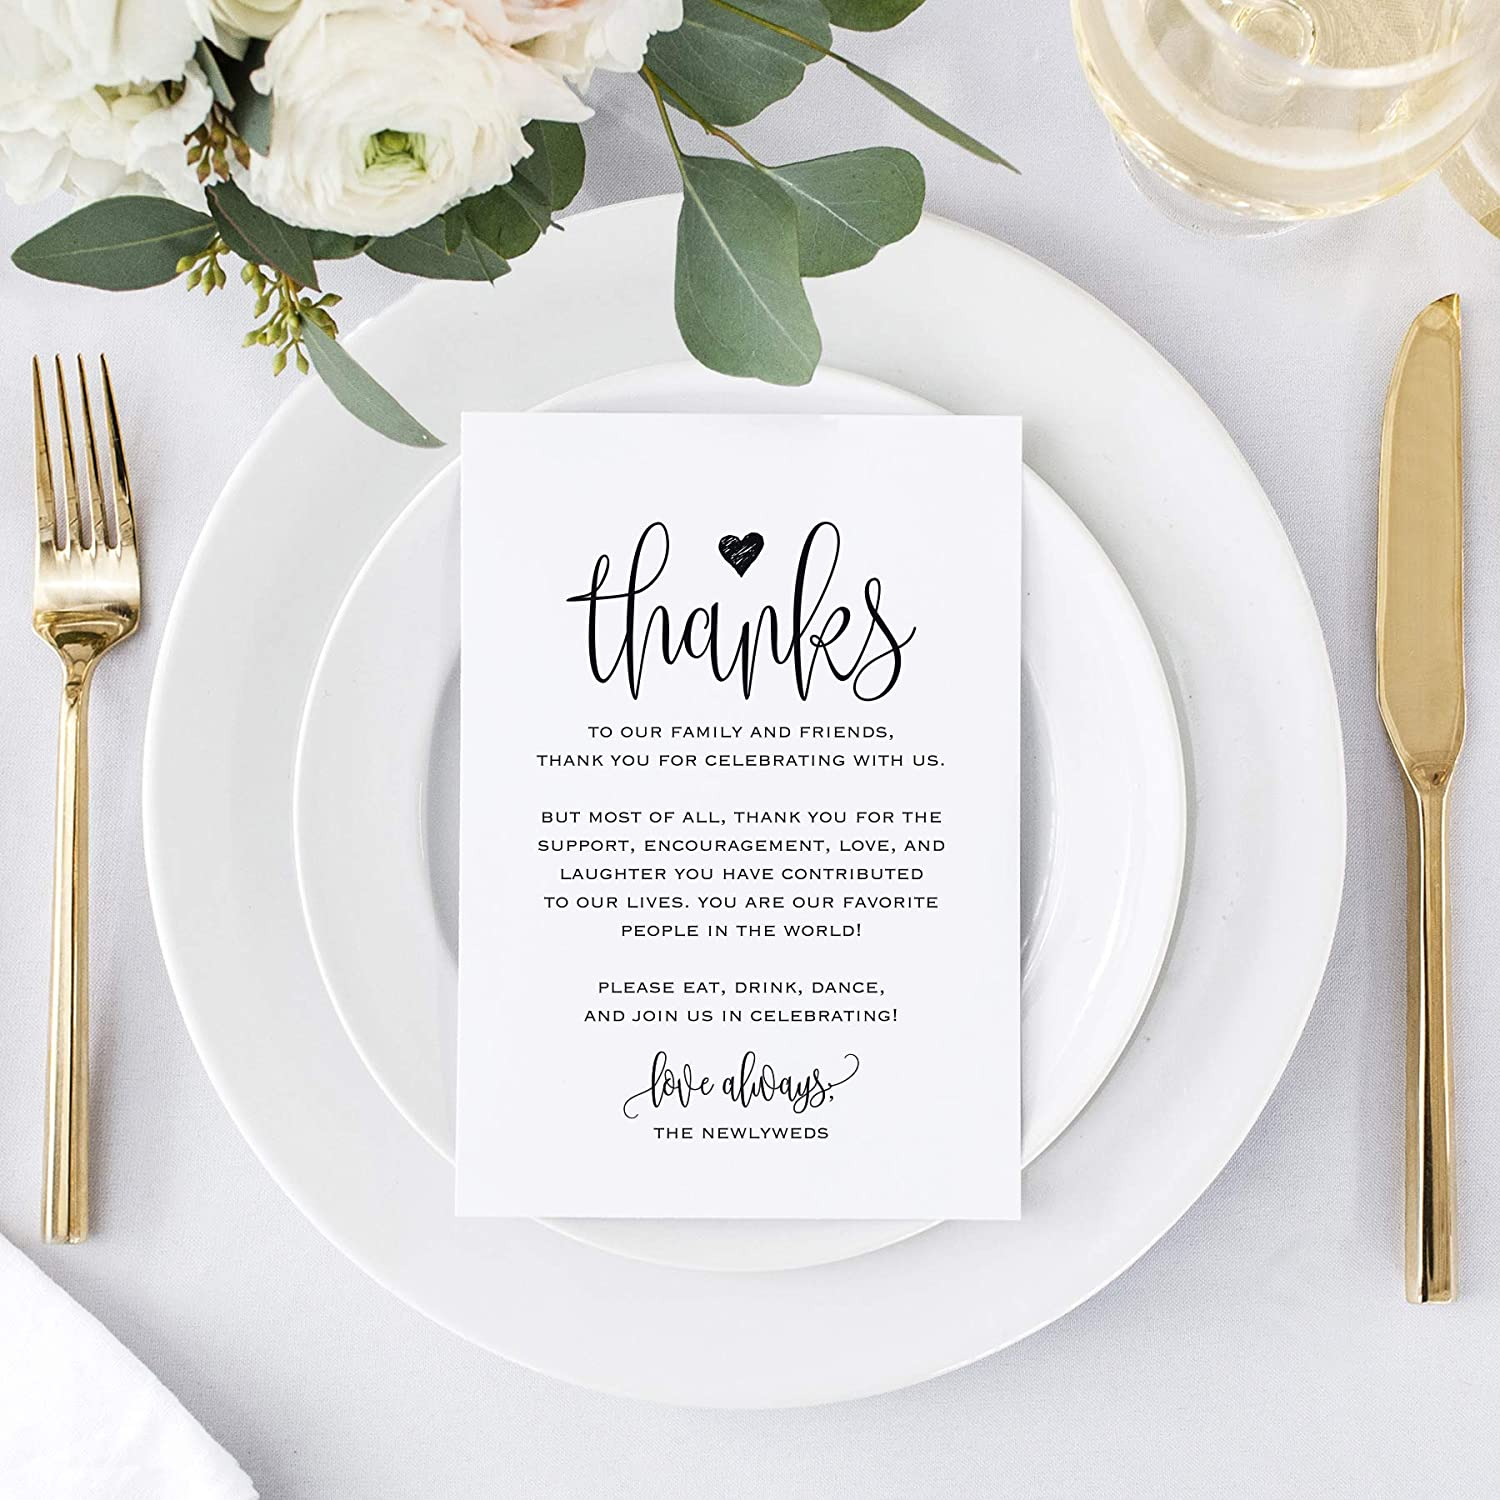 Thank You Wedding Cards.Bliss Collections Wedding Thank You Place Setting Cards Print To Add To Your Table Centerpieces And Wedding Decorations Pack Of 50 4x6 Cards